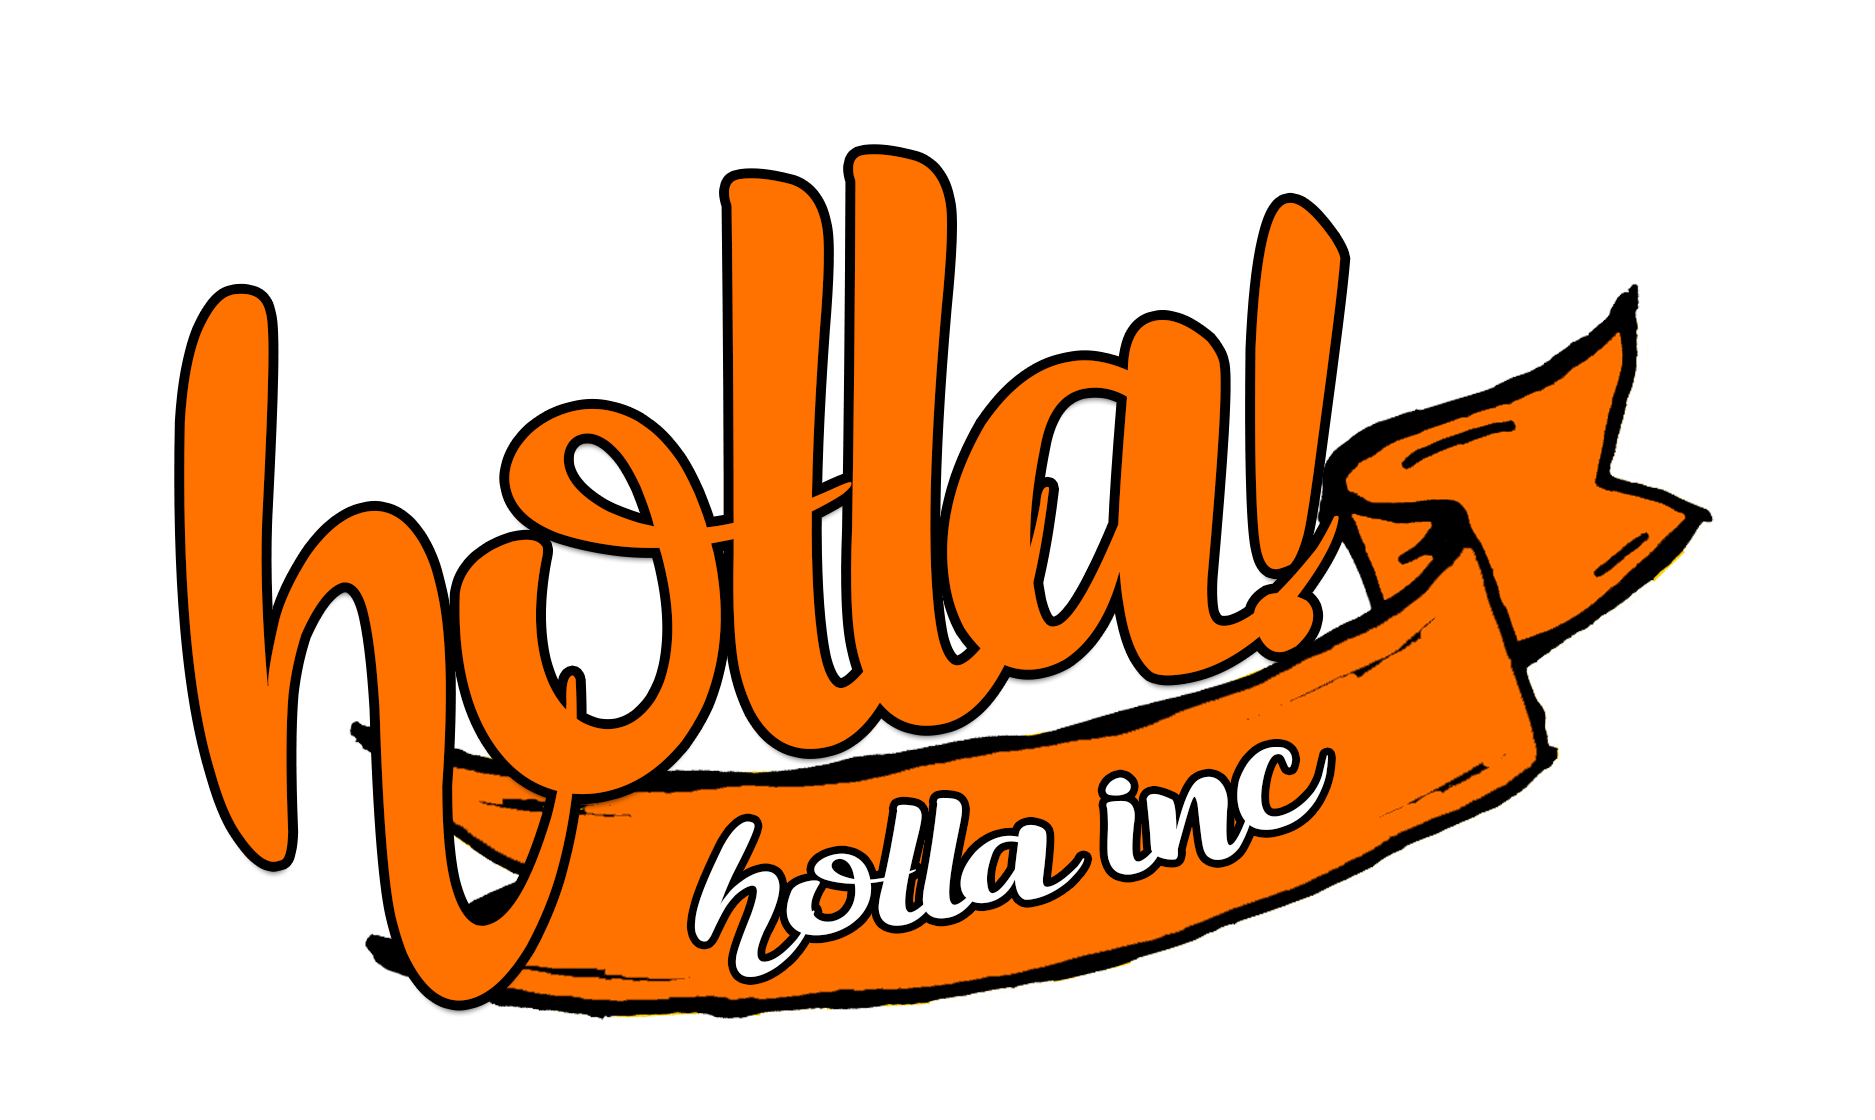 HOLLA INC.